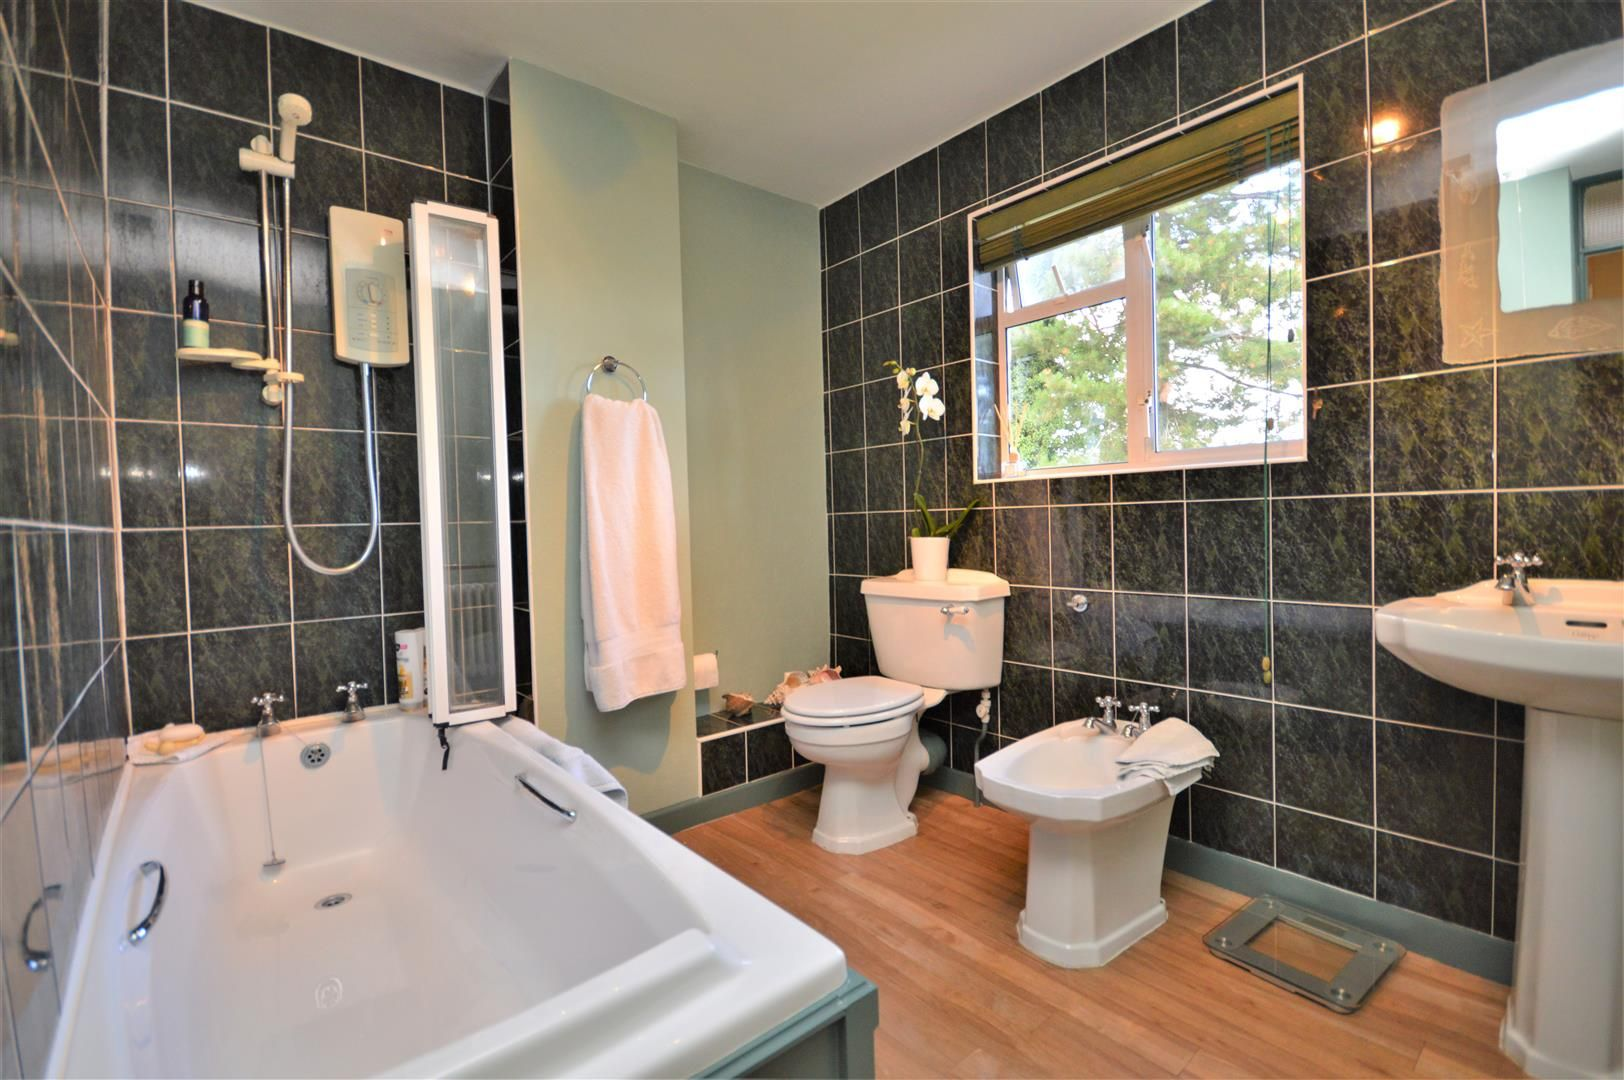 5 bed detached for sale in Stretton Sugwas  - Property Image 24